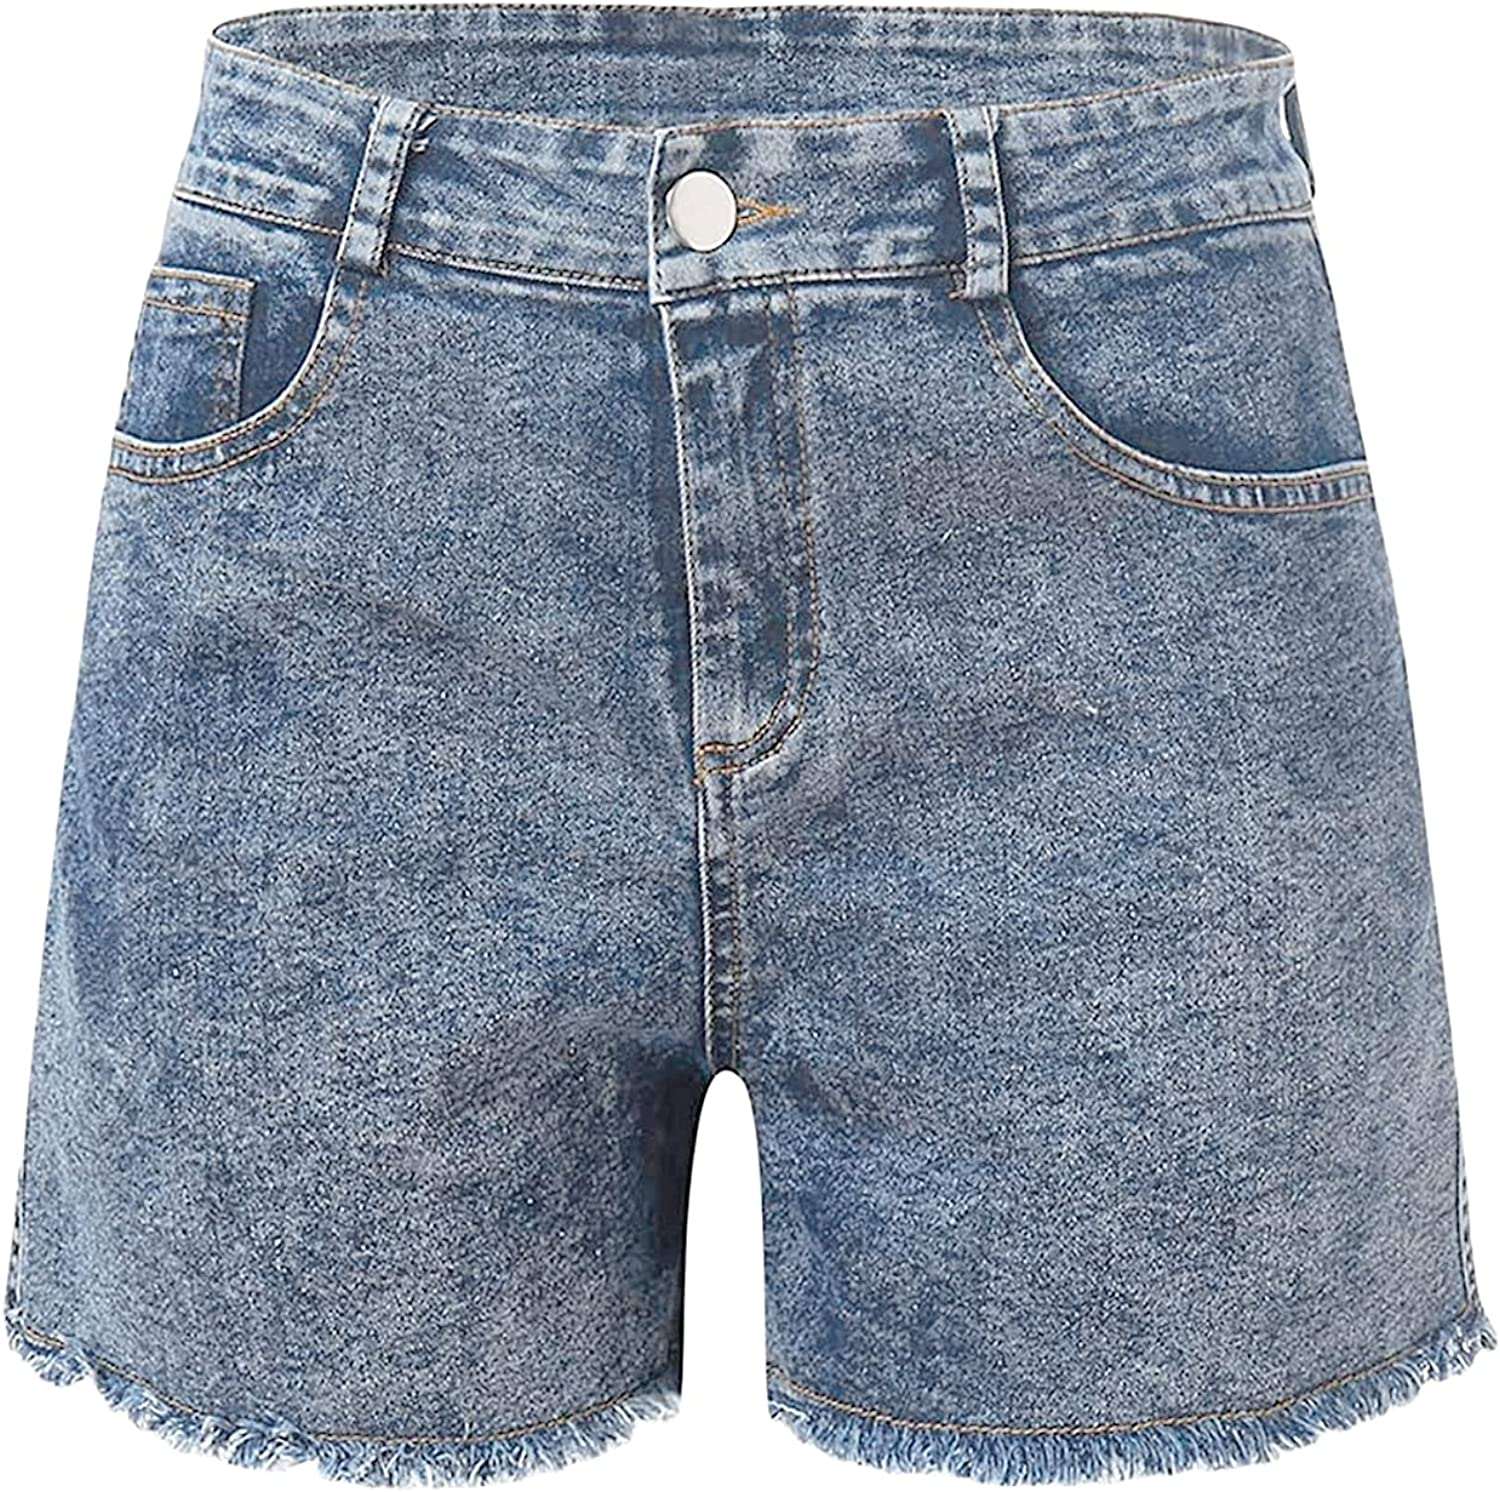 Women Frayed Skinny Jean Shorts Butt Lifting Raw Hem Stretchy Short Jeans Summer High Rise Sexy Fitted Denim Shorts